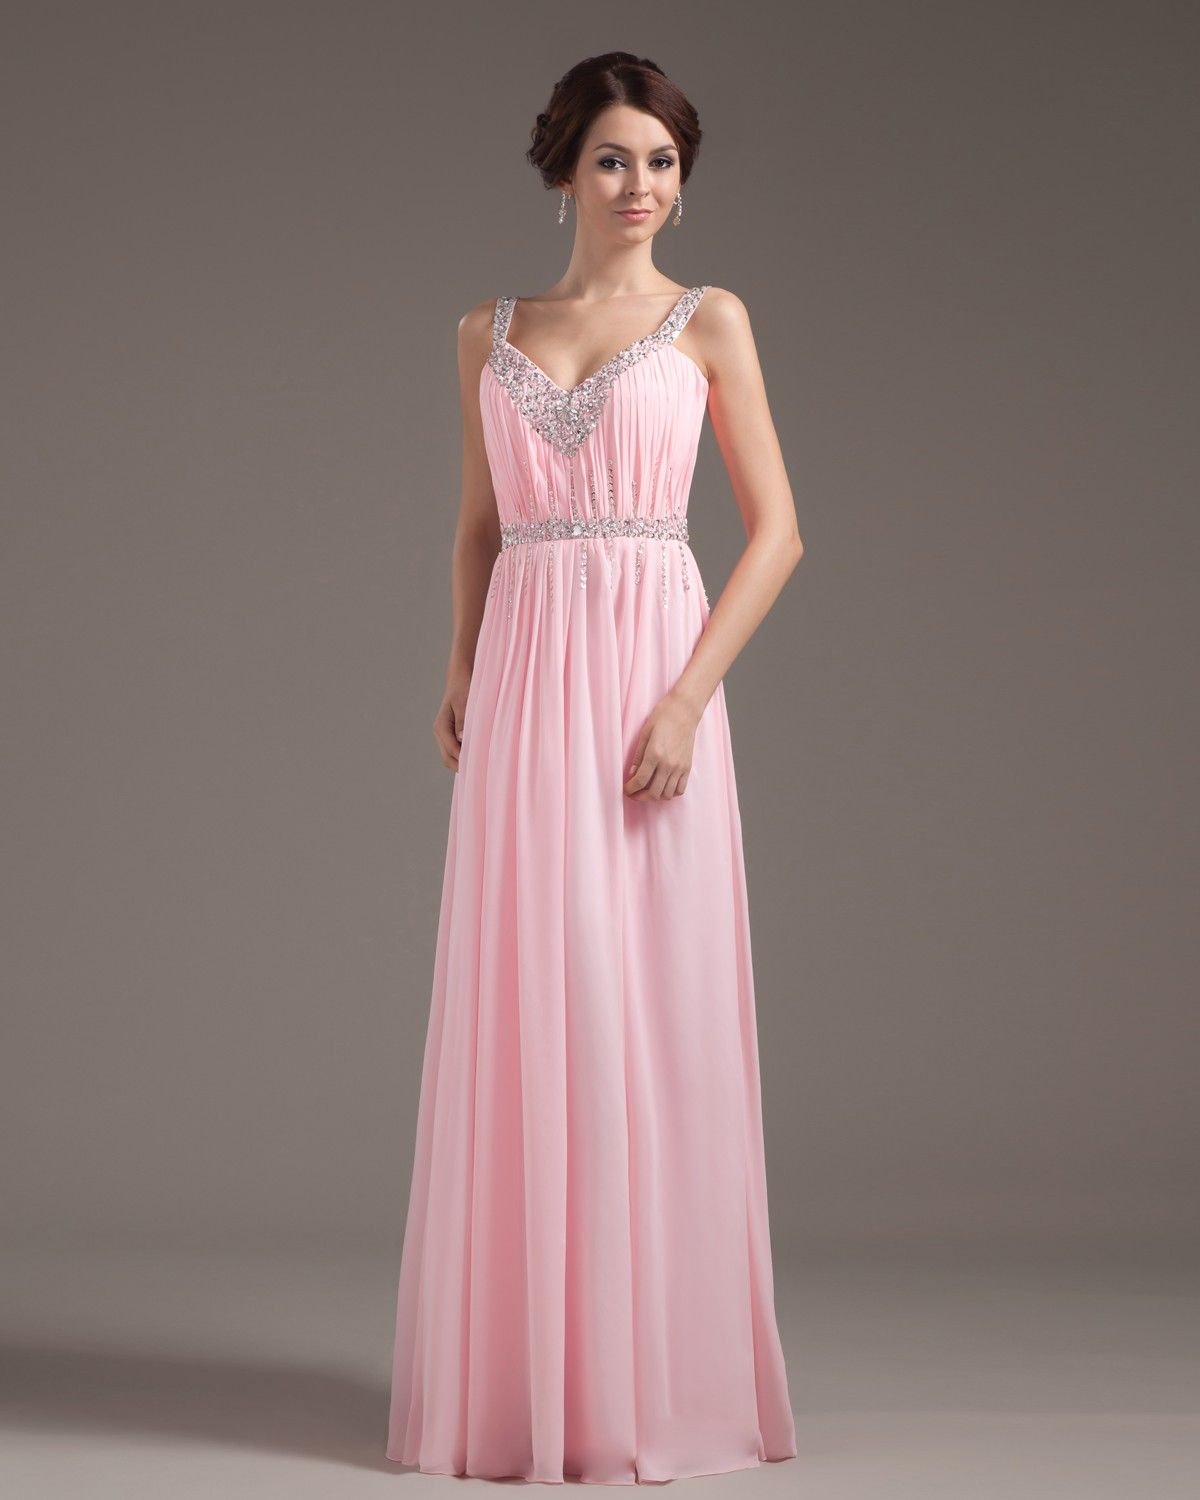 Pink prom dresses are extremely sought after at the moment and the